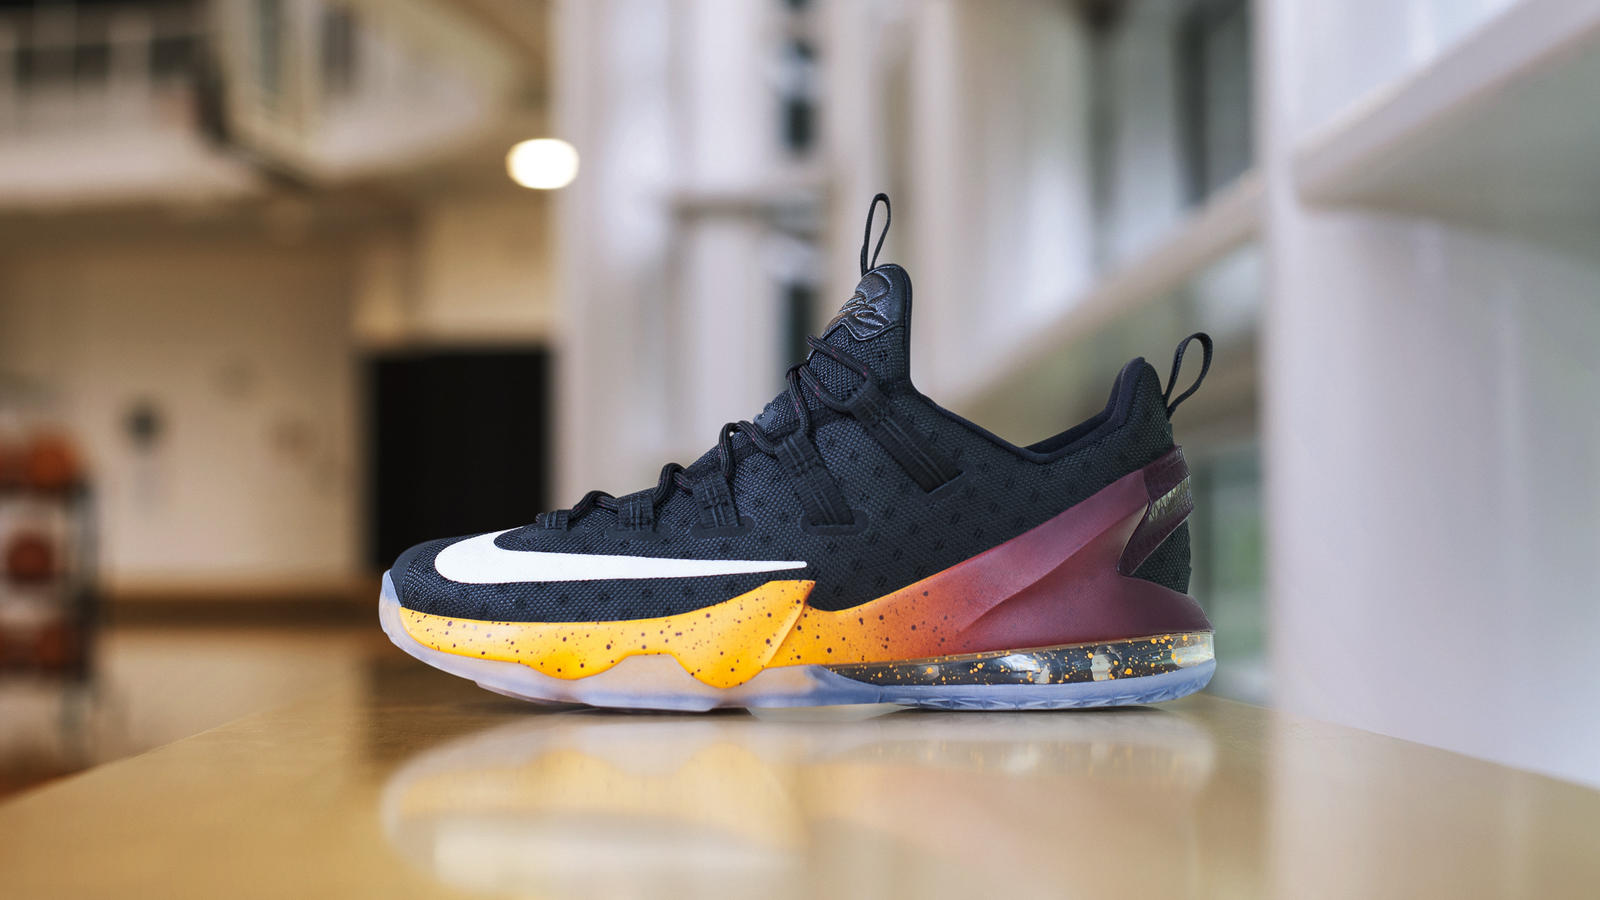 J. R. Smith LEBRON 13 Low PE